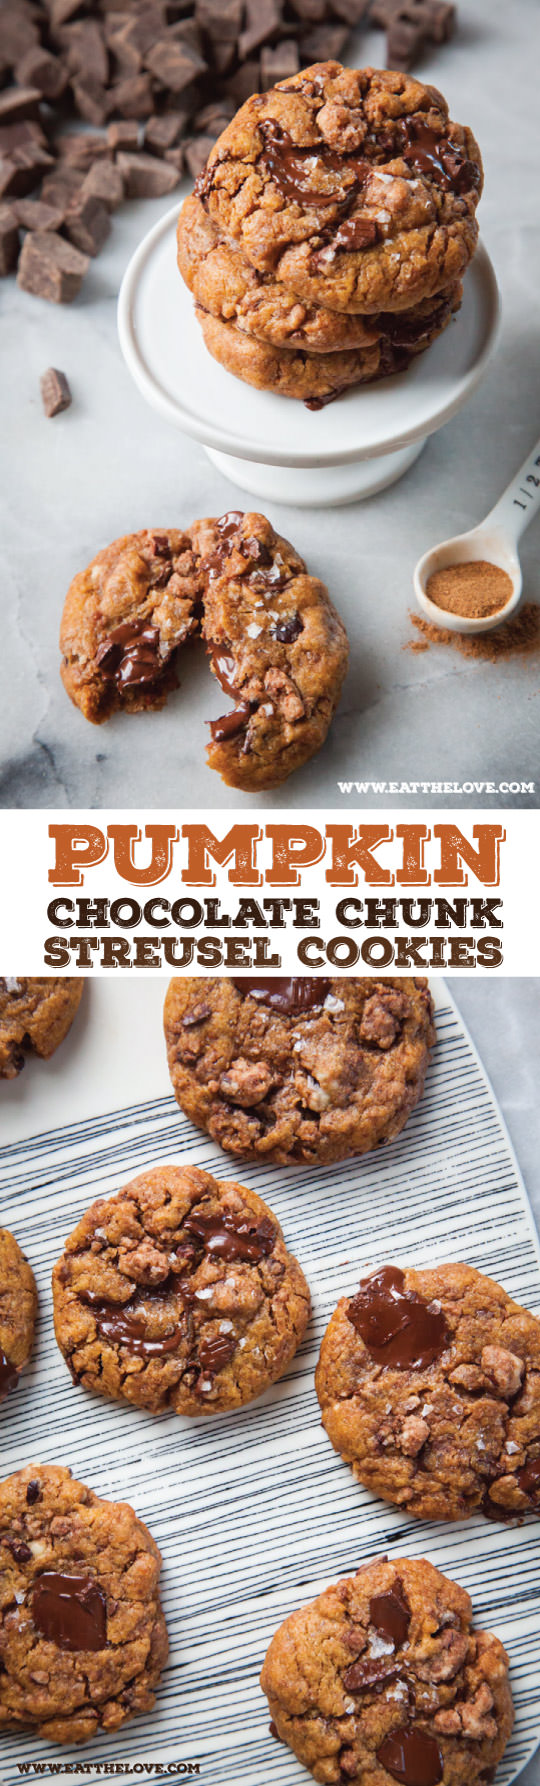 Pumpkin Chocolate Chip Cookies with Pumpkin Spice Streusel! Recipe by Irvin Lin of Eat the Love.